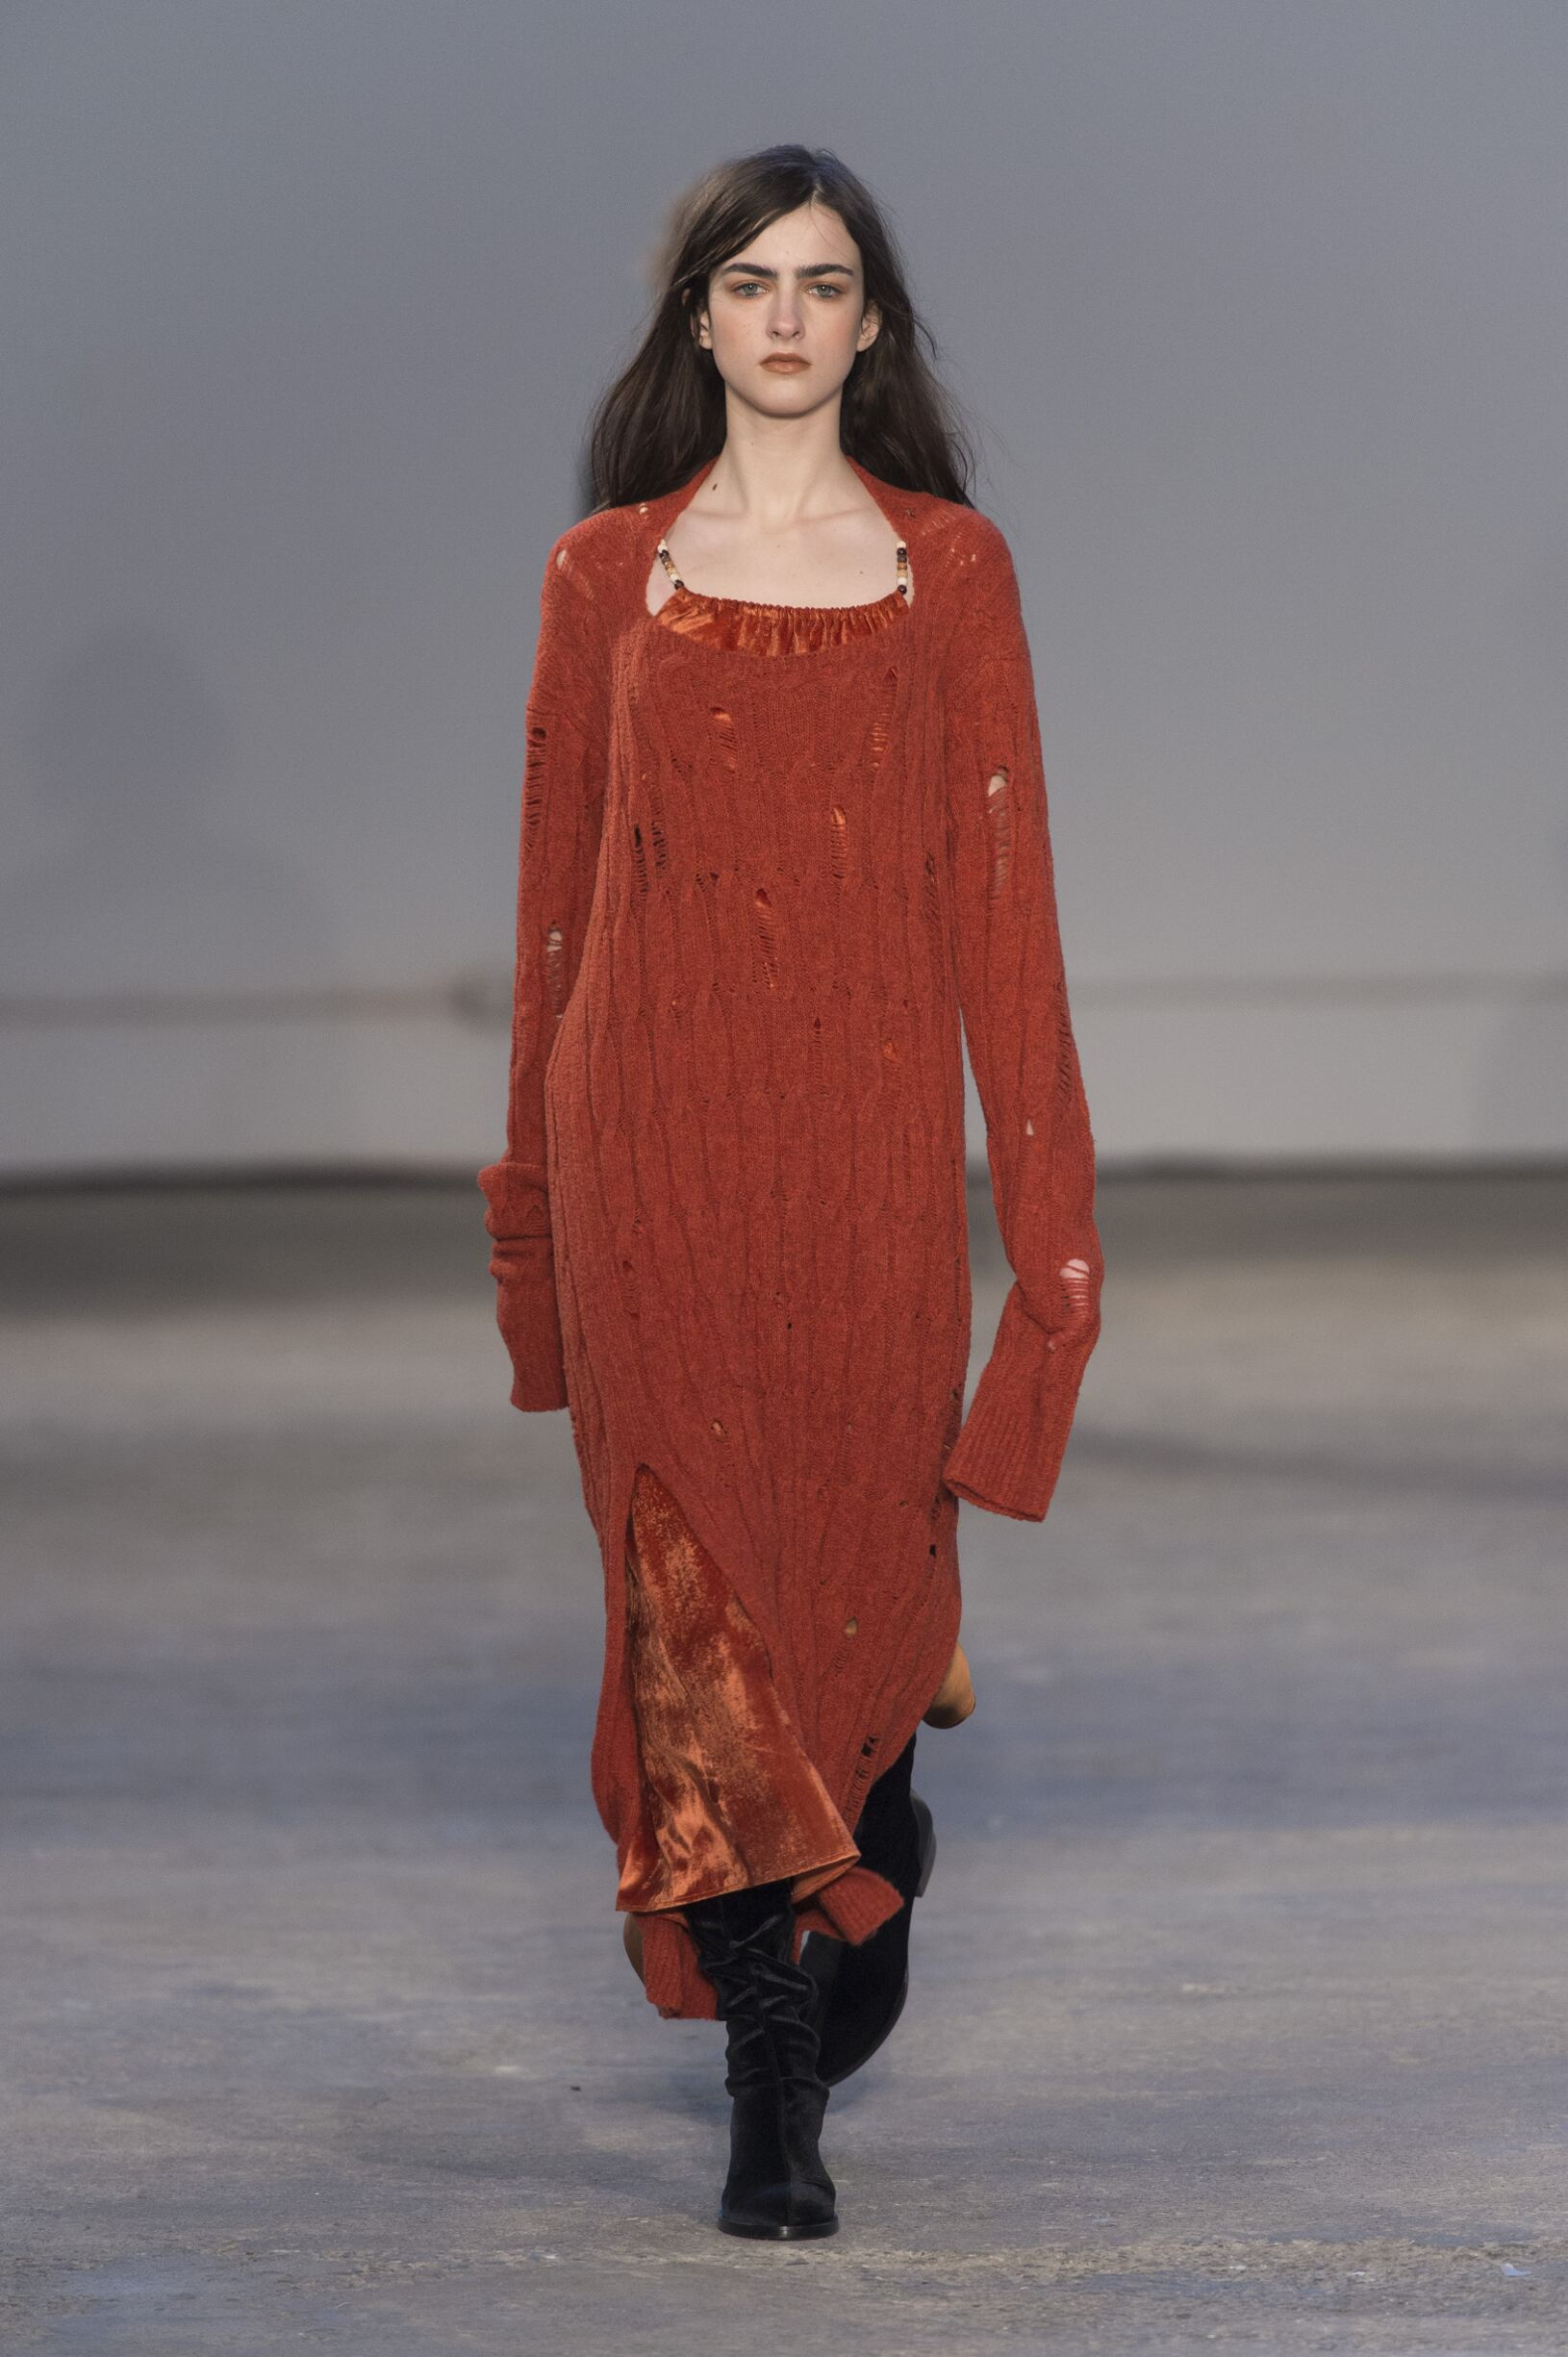 Fashion Woman Model Damir Doma Catwalk